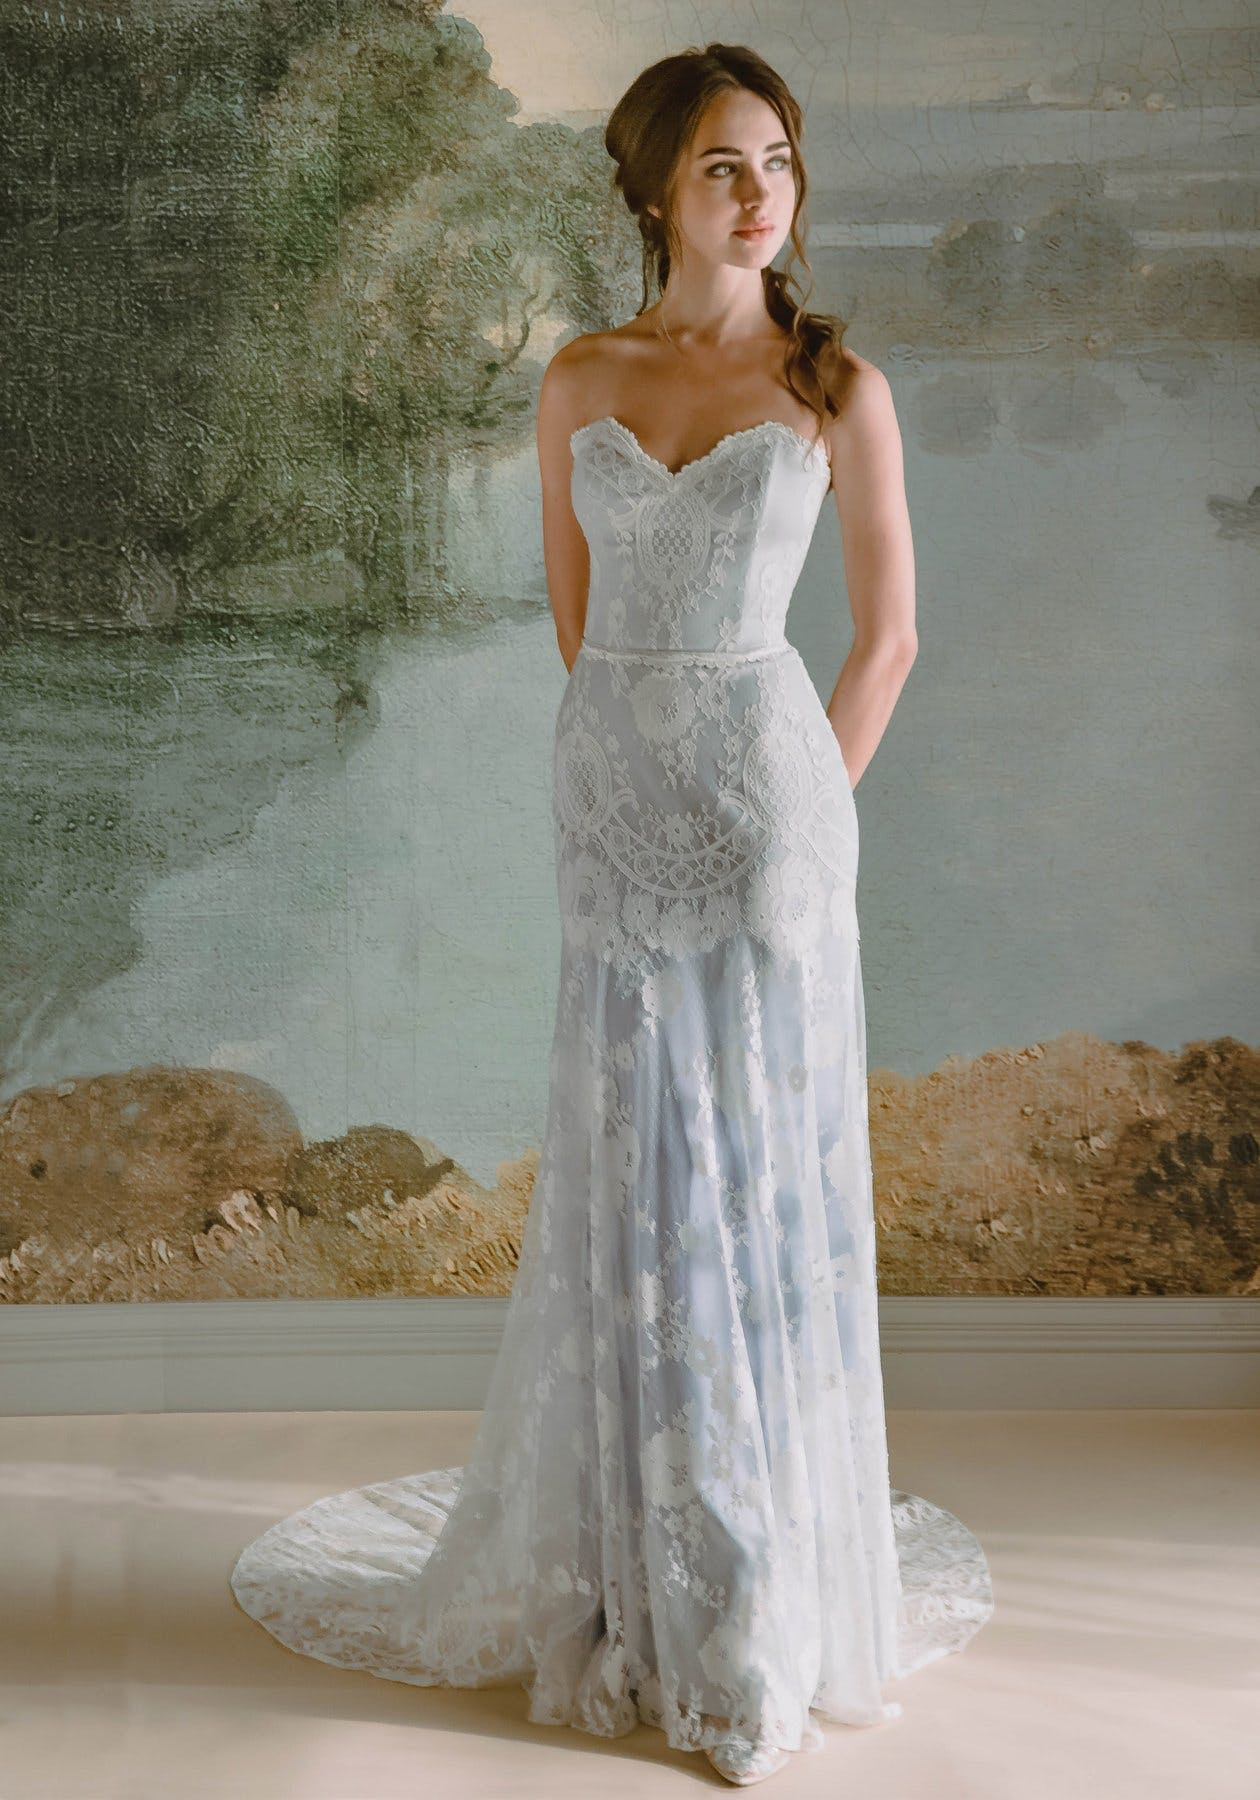 Lace Wedding Dresses 23 Of The Most